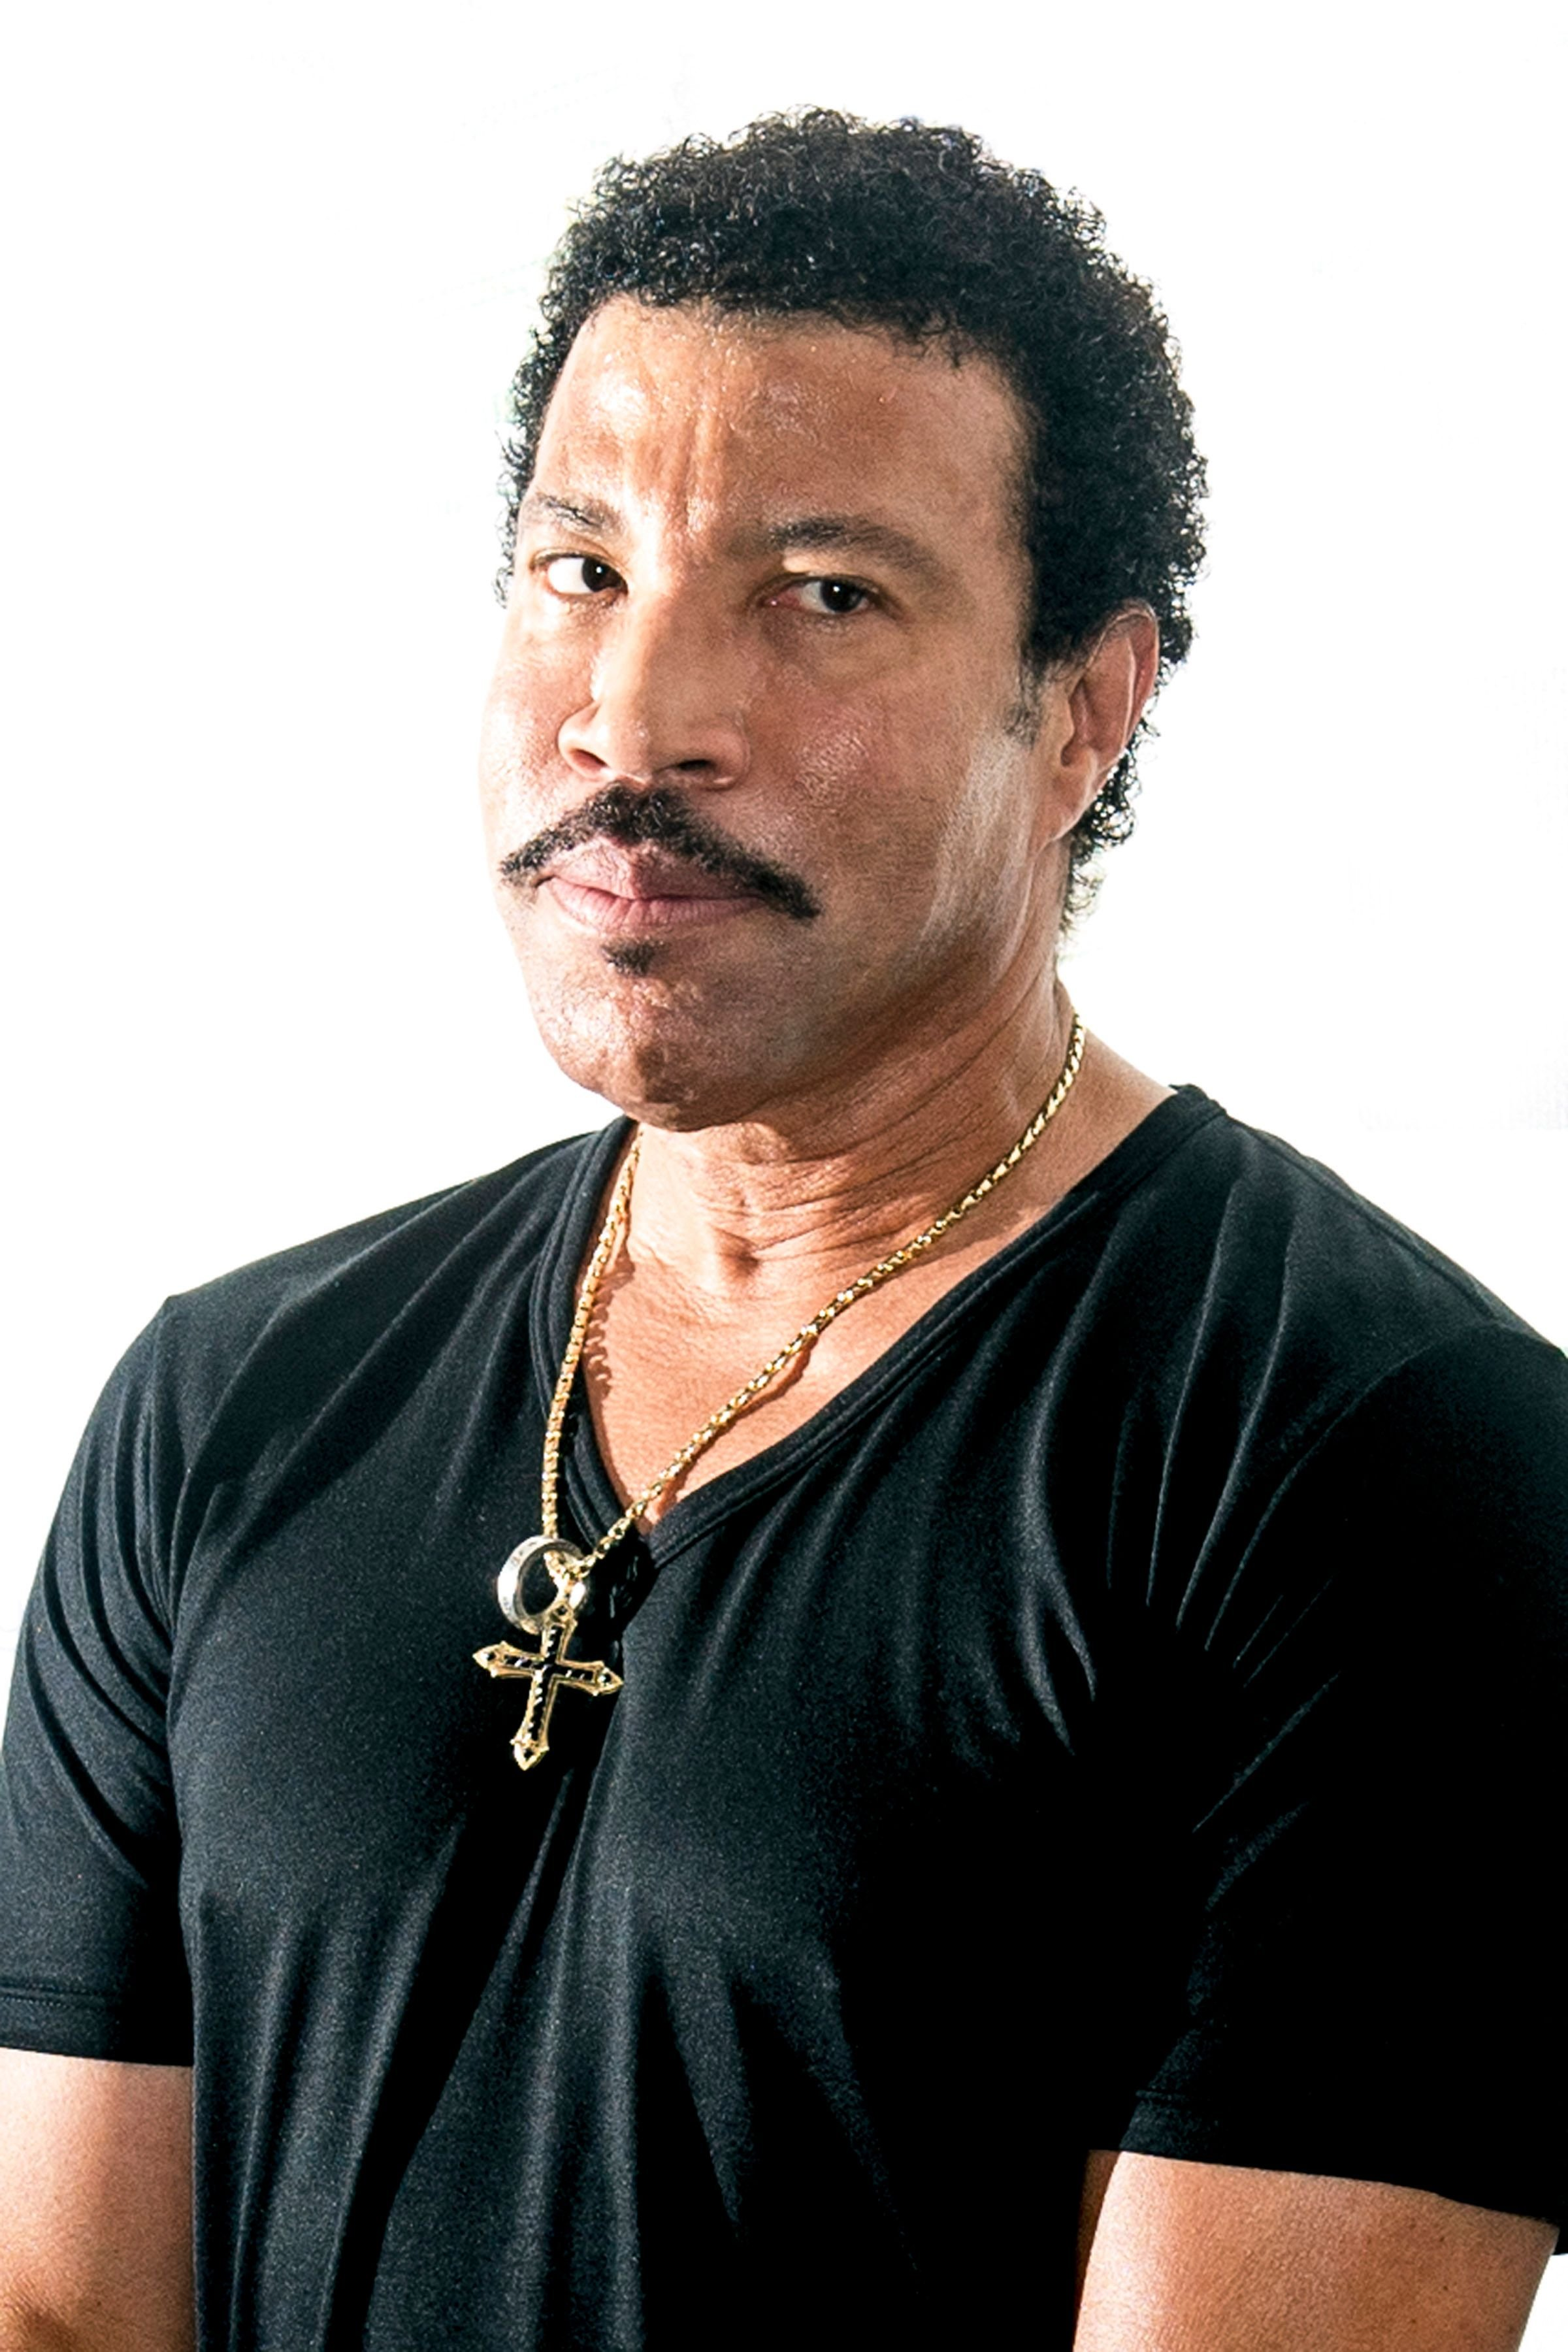 Lionel Richie backstage at the British Summer Time Hyde Park on July 14, 2013 in London.   Photo: Getty Images